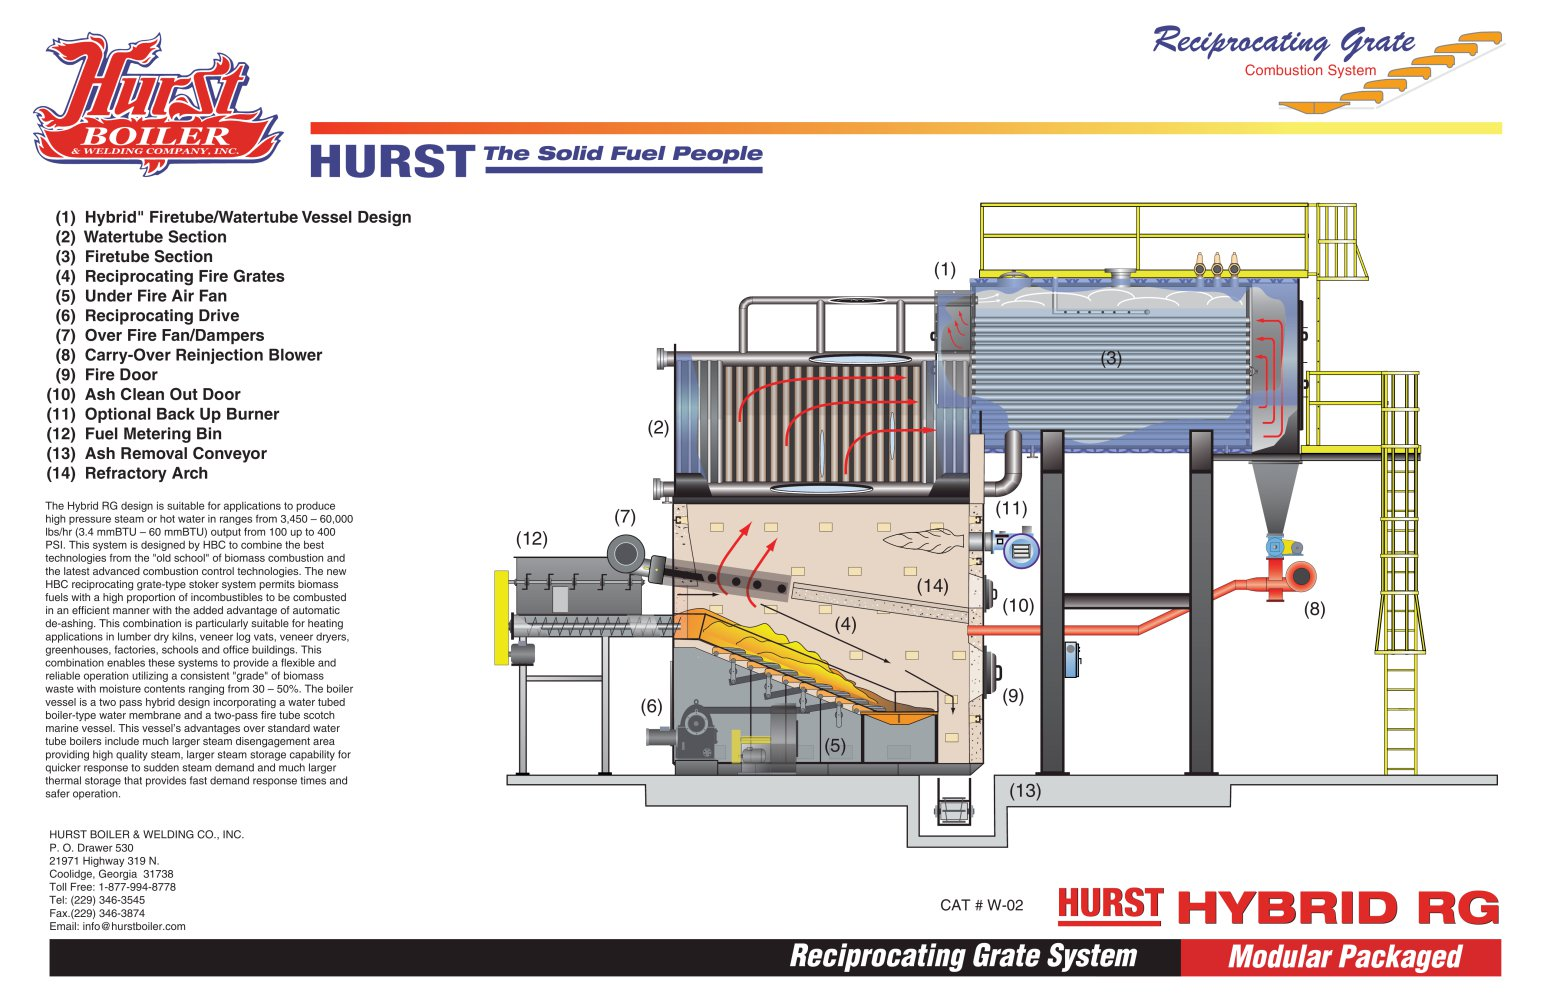 Wood 02 hybrid rg hurst boiler welding co inc pdf wood 02 hybrid rg 1 1 pages pooptronica